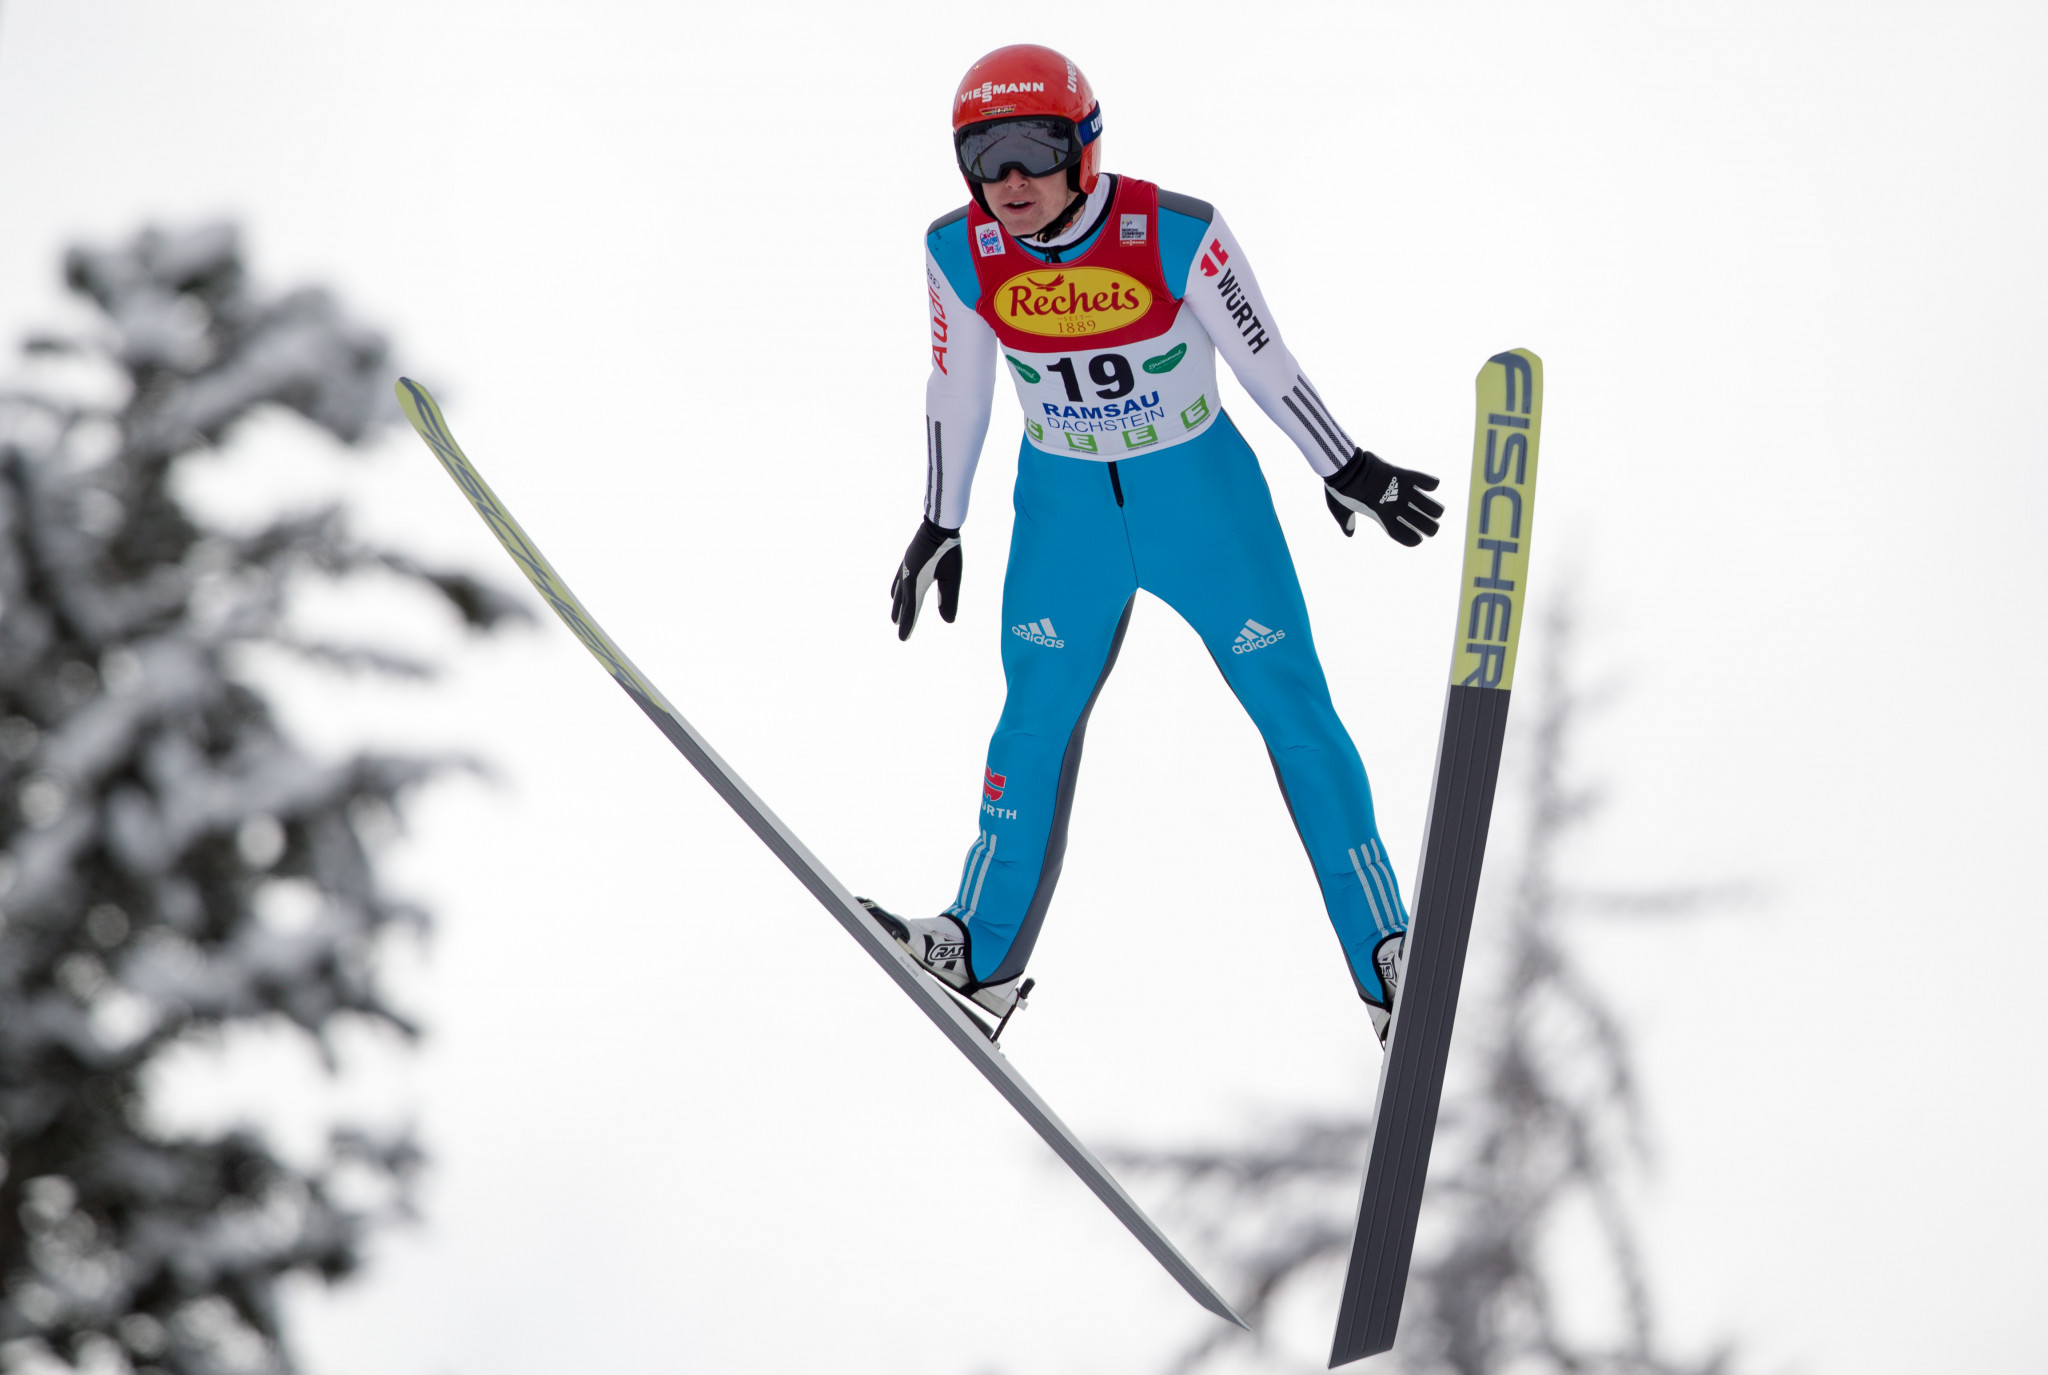 Geiger and Frenzel take victory for Germany in team sprint at FIS Nordic Combined World Cup